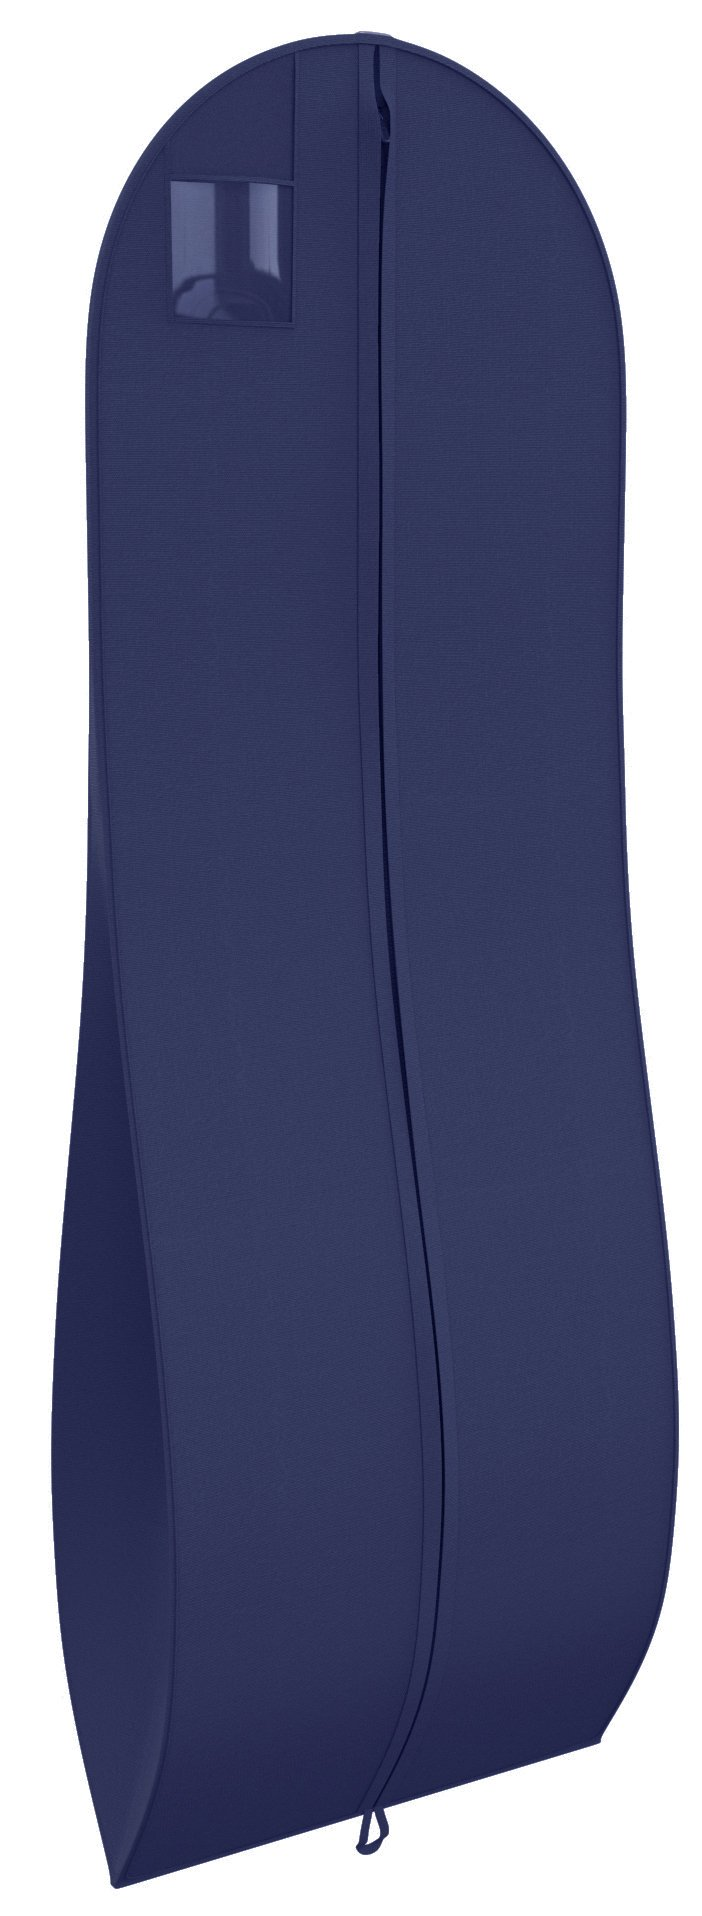 "Gusseted Gown Garment Bag for Women's Prom and Bridal Wedding Dresses - Travel Folding Loop, ID Window- 72"" x 24"" with 10"" Tapered Gusset - Navy - by Your Bags"